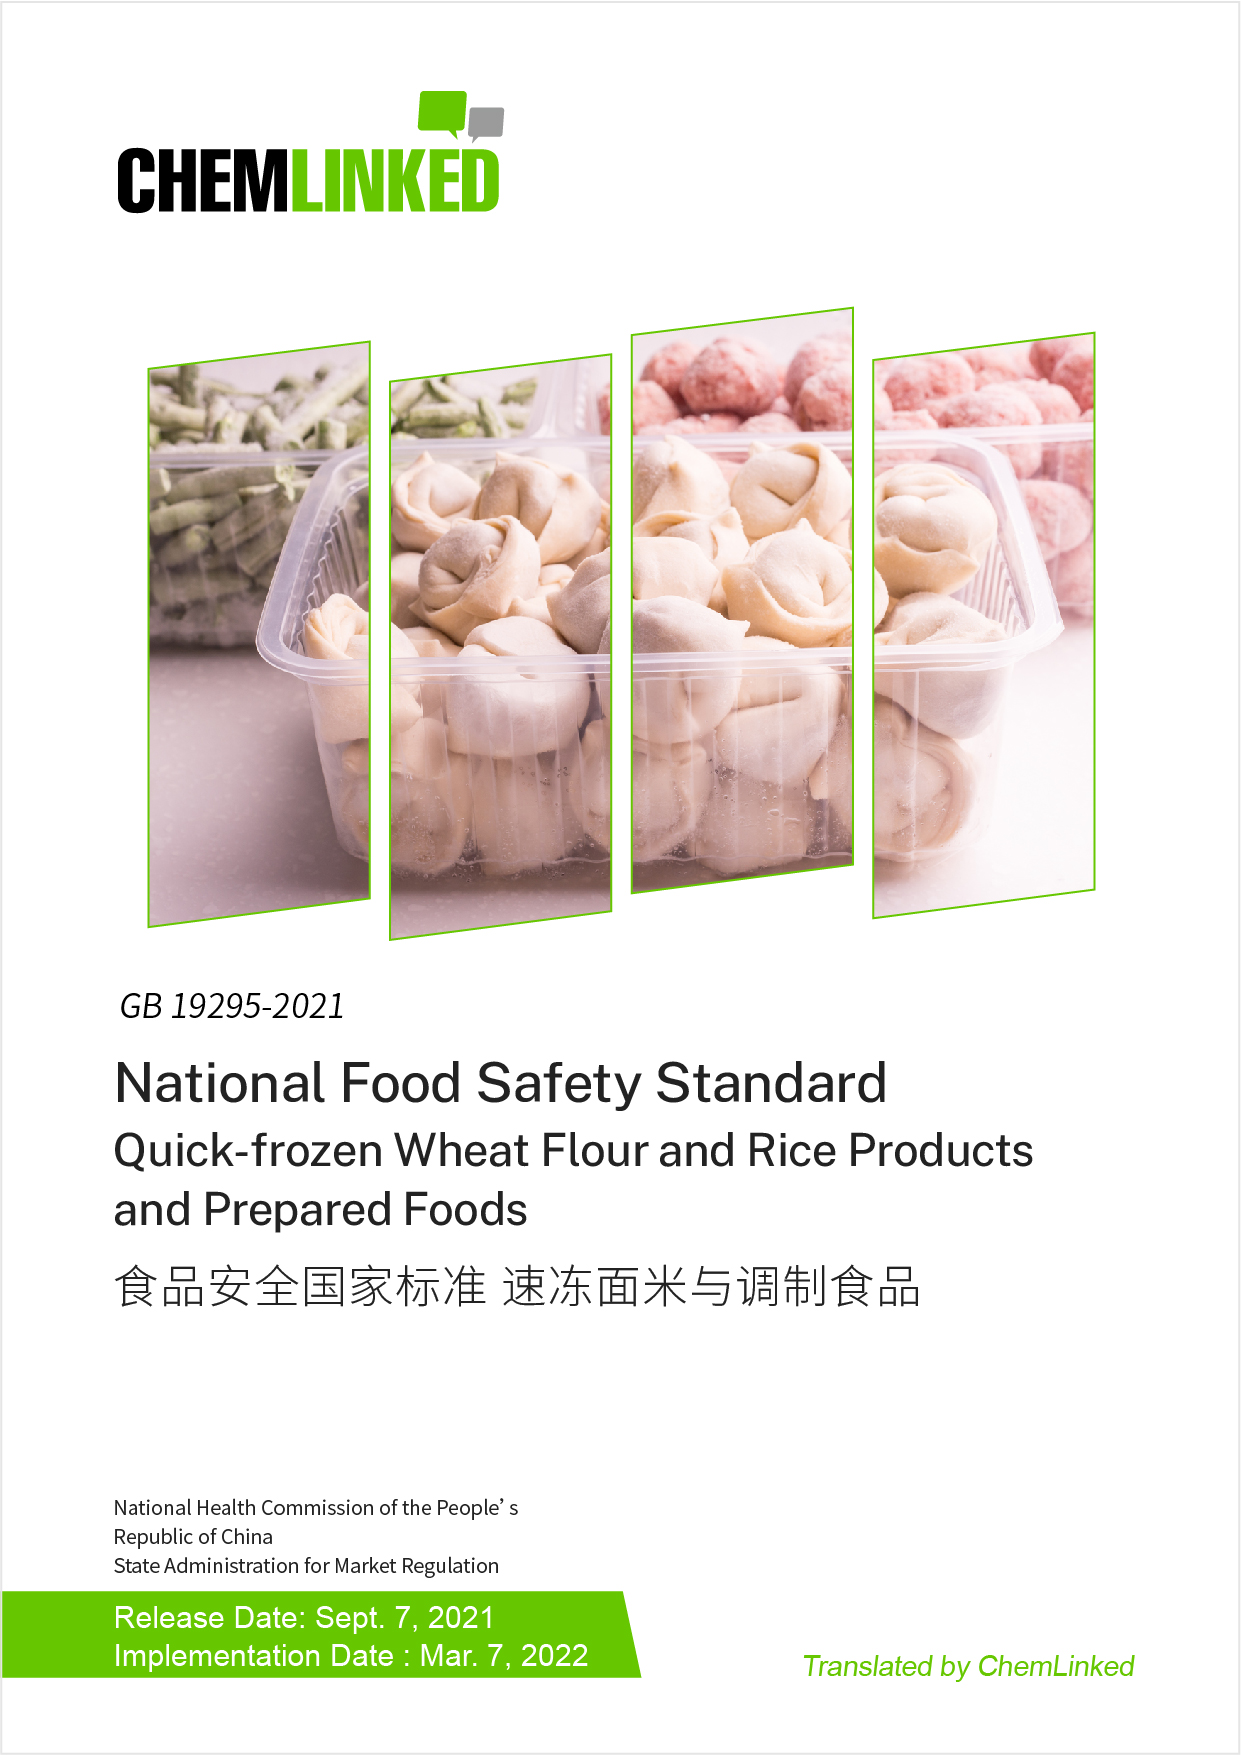 GB 19295-2021 National Food Safety Standard Quick-frozen Wheat Flour and Rice Products and Prepared Foods